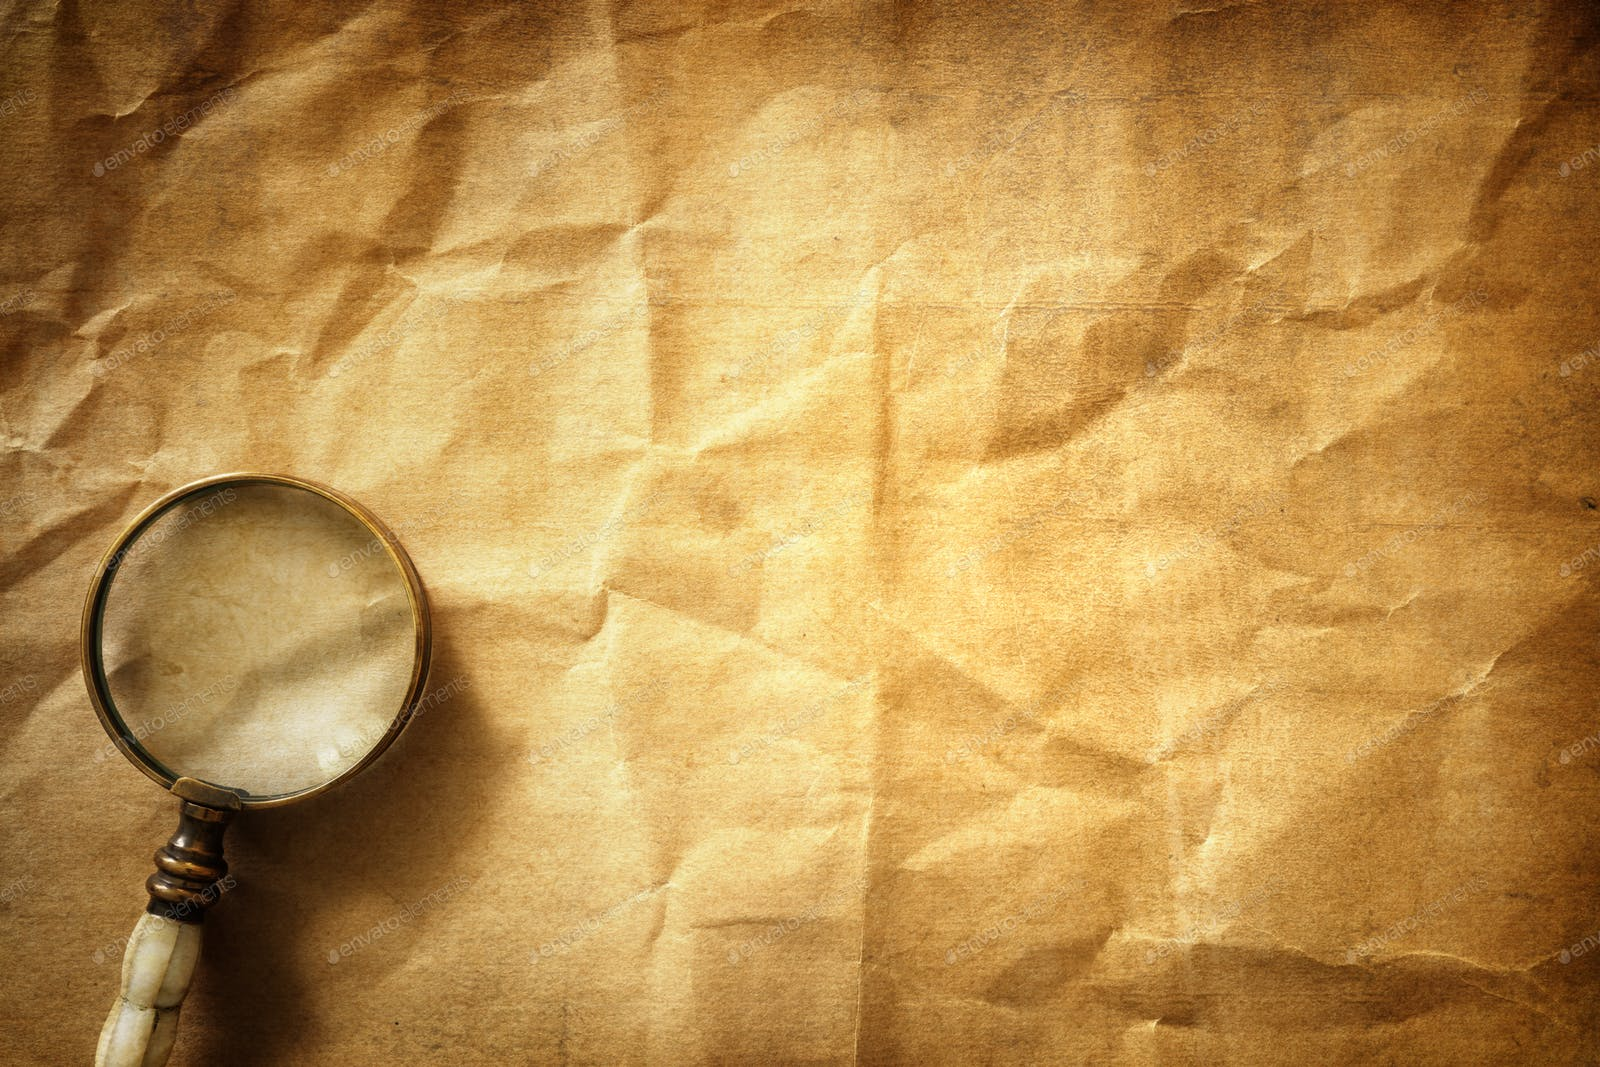 The use of best focus with magnifying glass